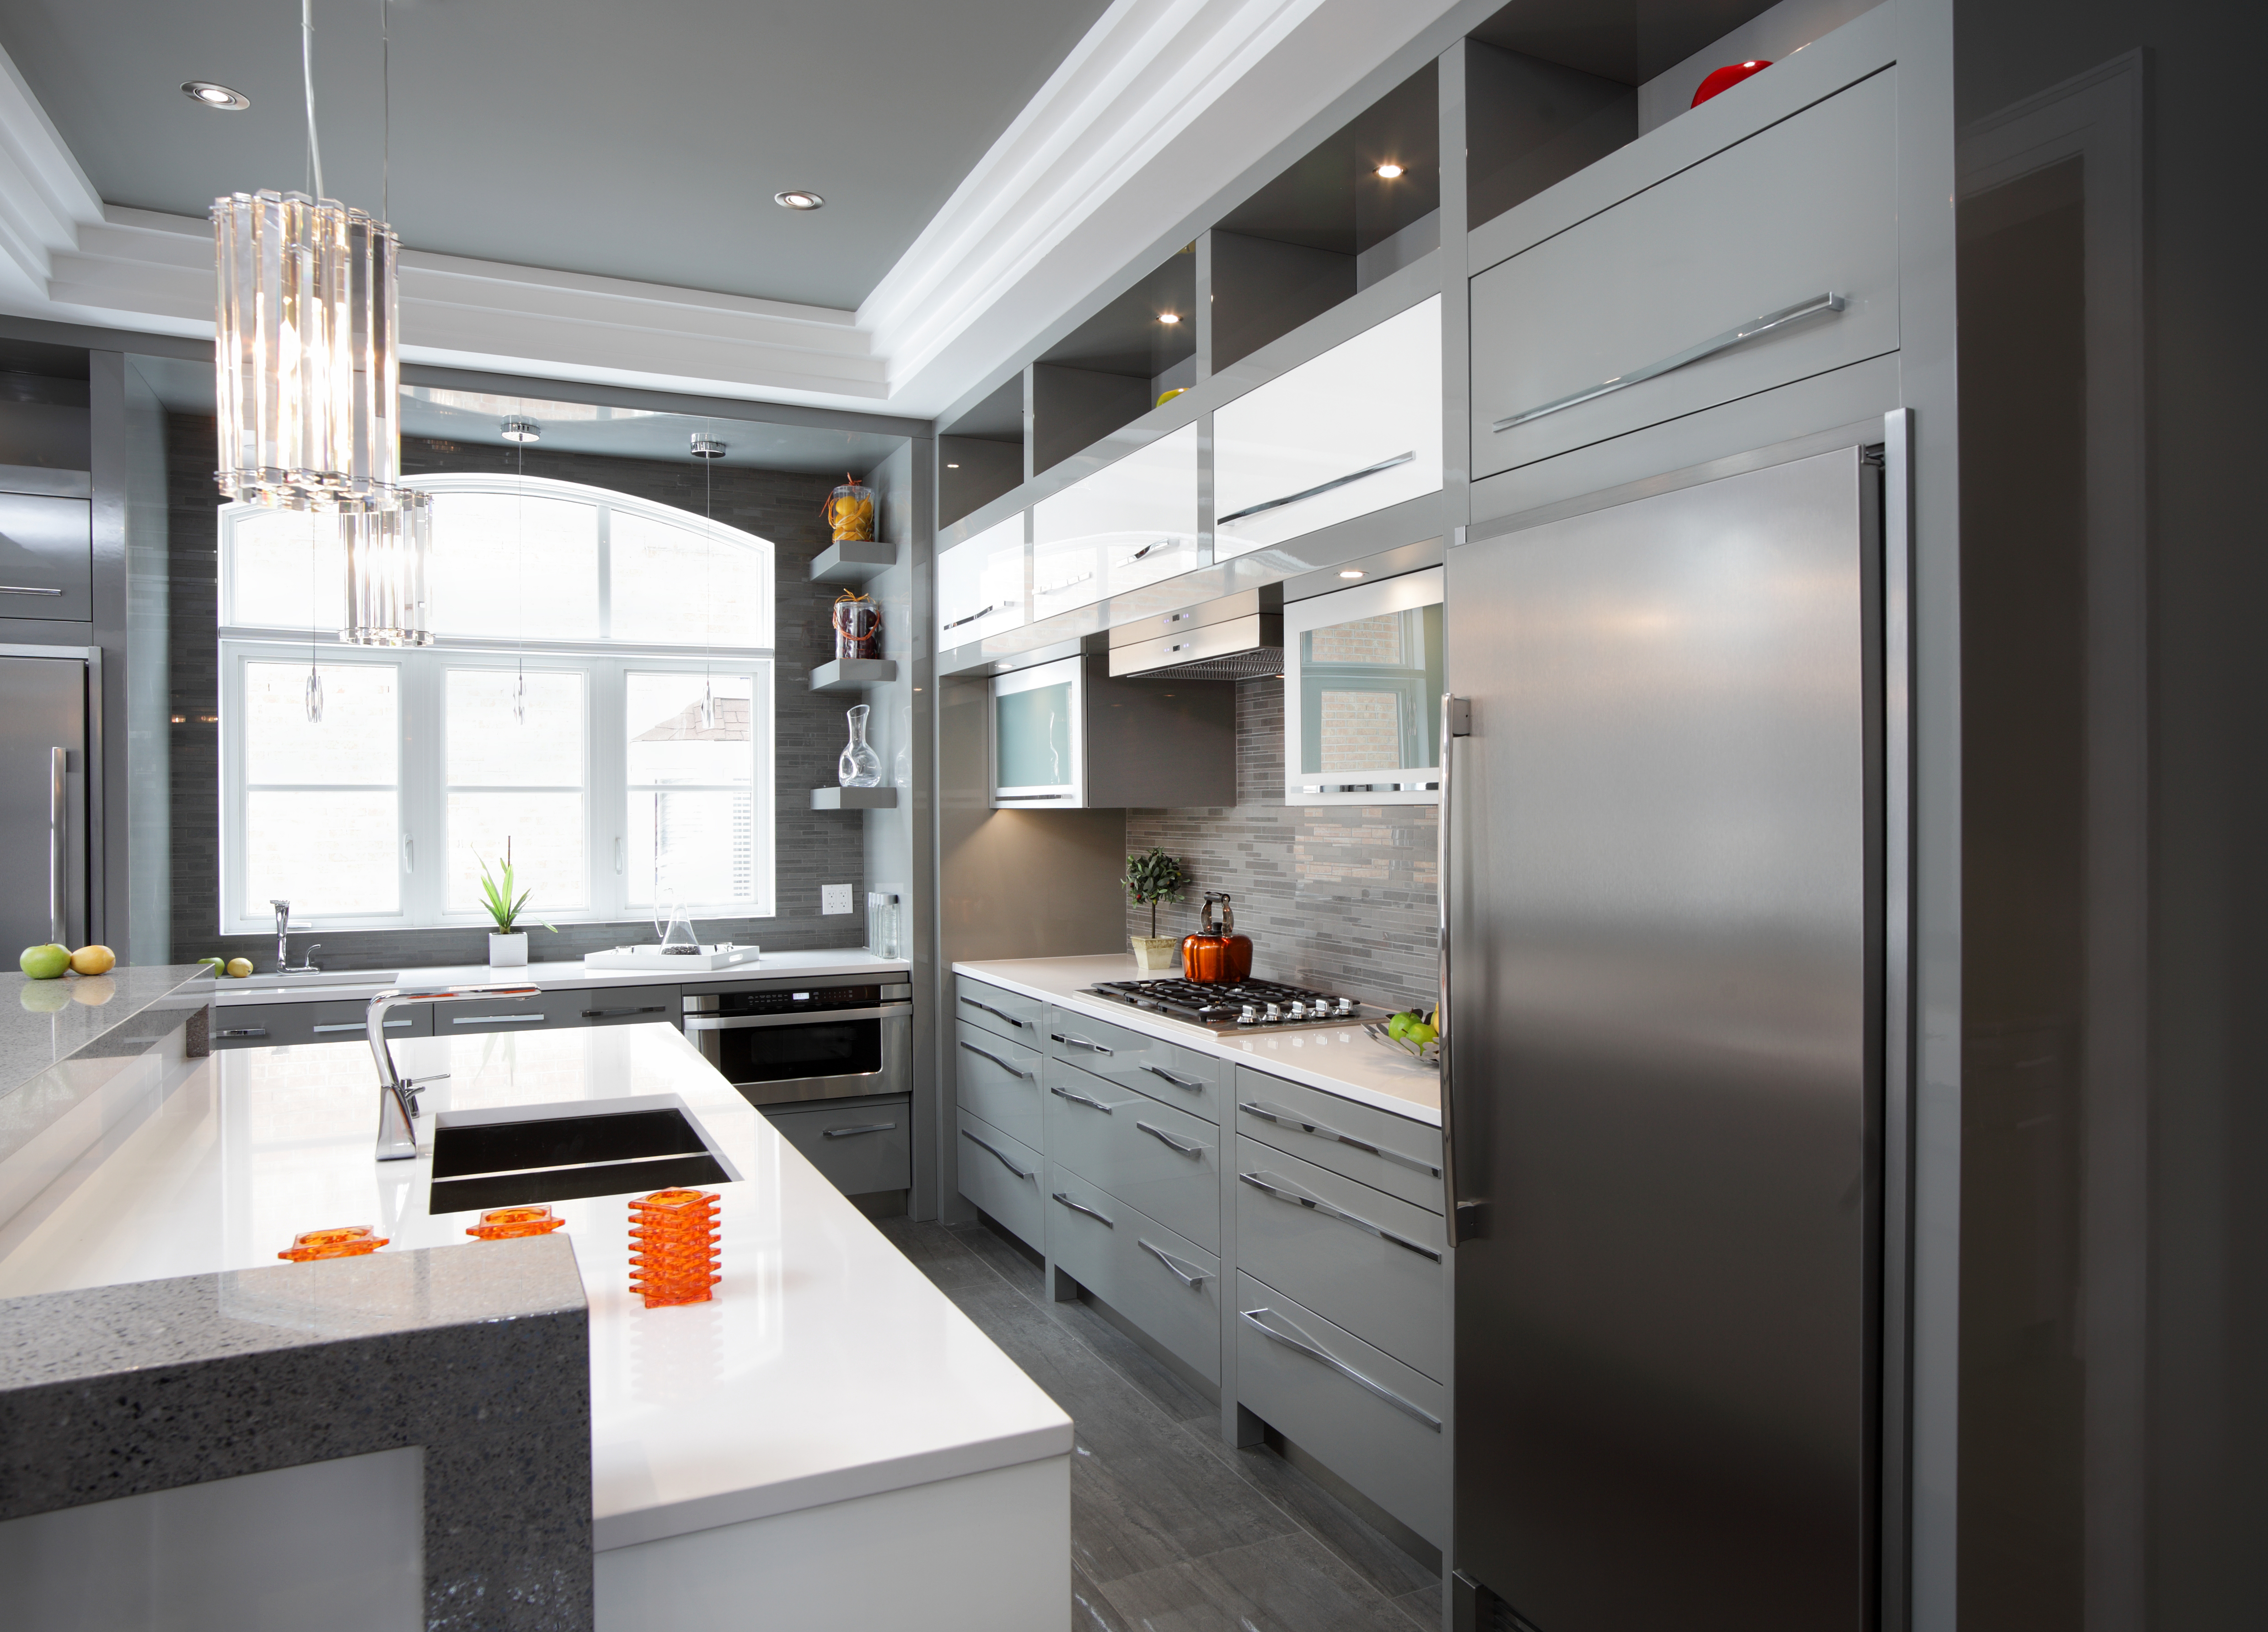 The Best Way To Remove Rust From Metal Cabinets Hunker